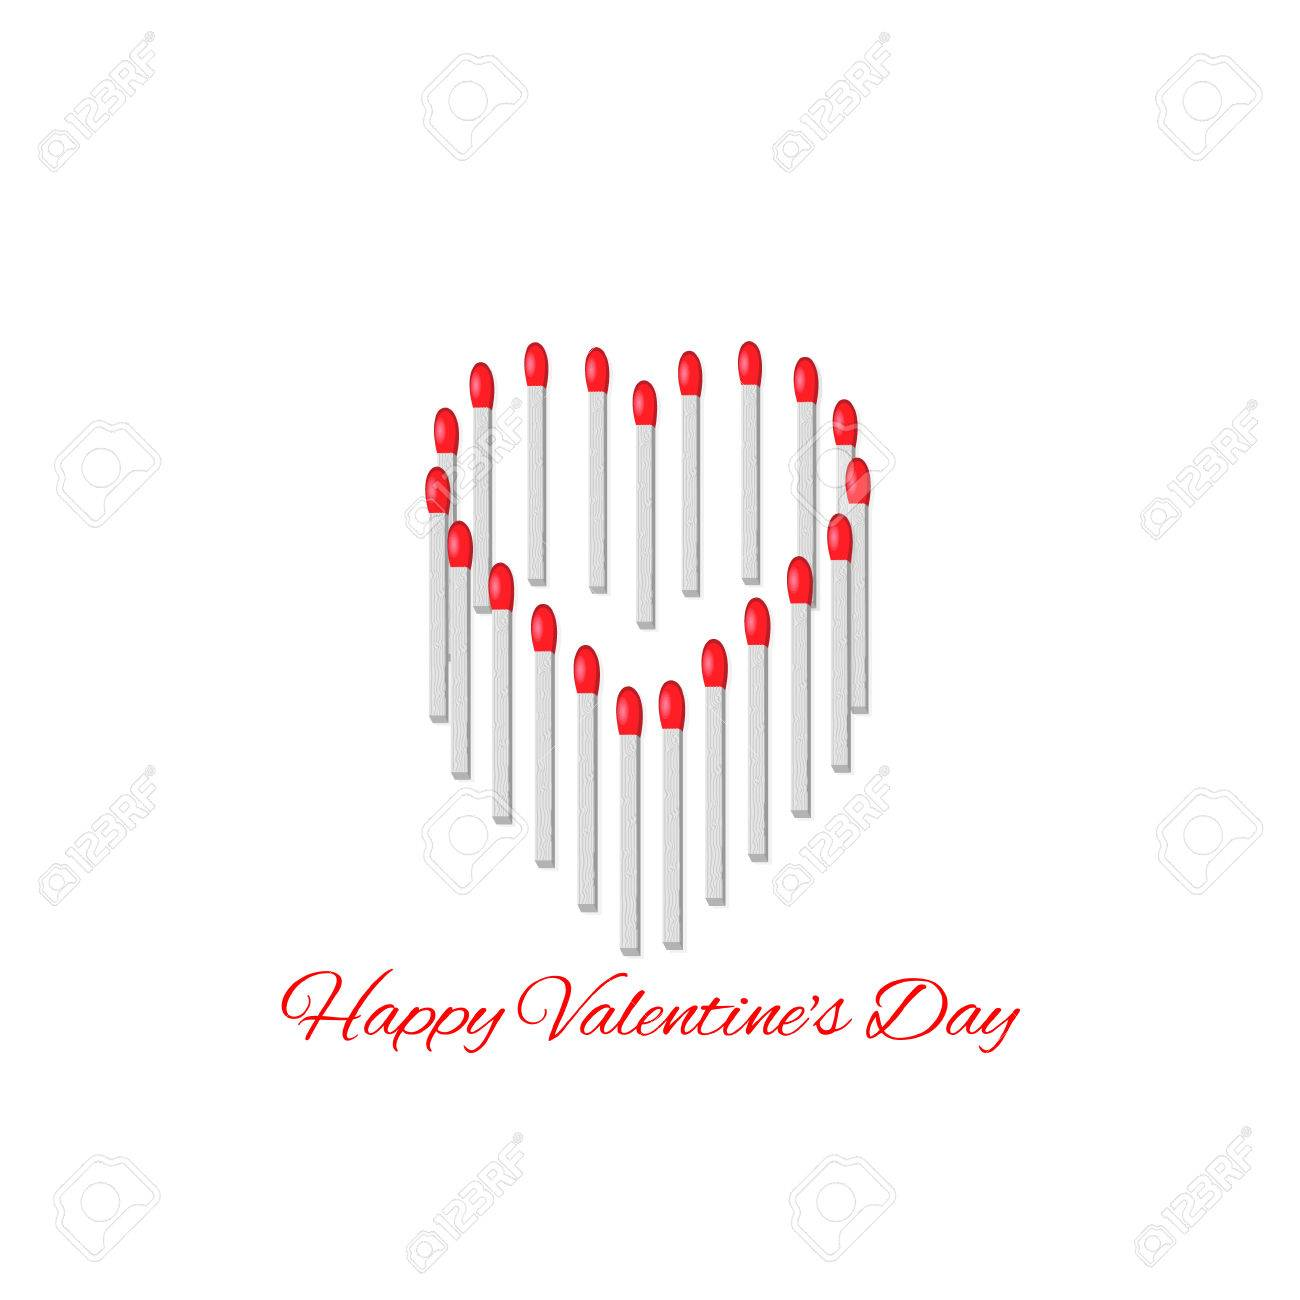 Happy valentines day creative greetings from matches isolated happy valentines day creative greetings from matches isolated on white background stock vector 34981725 kristyandbryce Choice Image